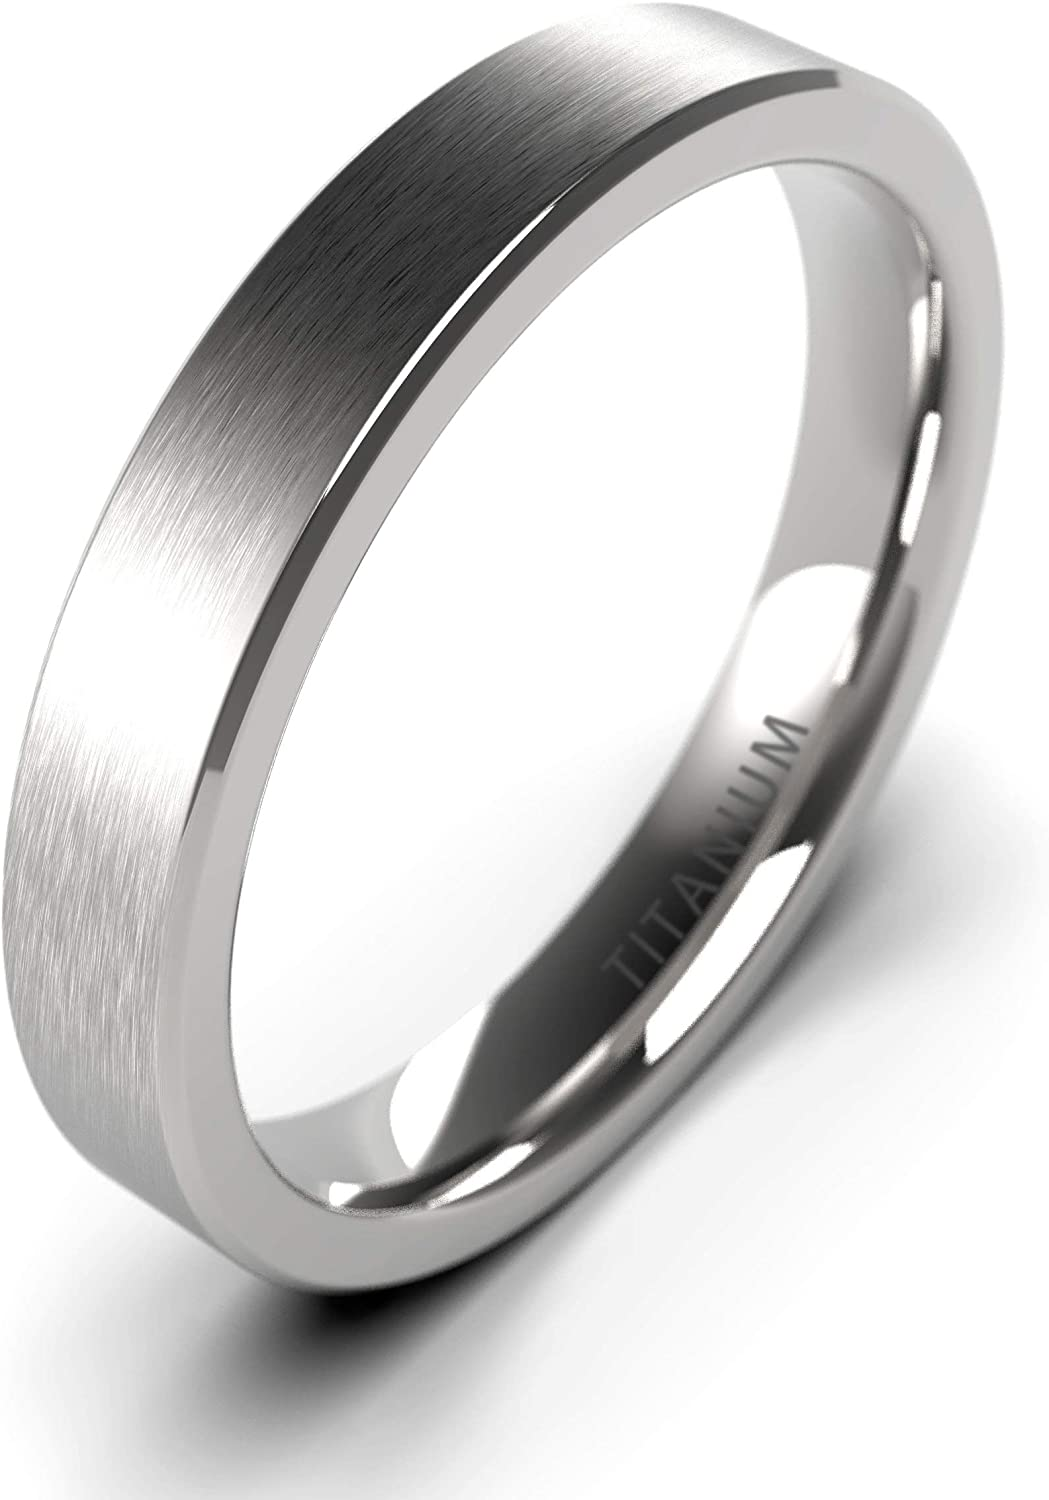 Shiny & co Titanium Rings 4MM 6MM 8MM 10MM Wedding Band in Comfort Fit Matte for Men Women